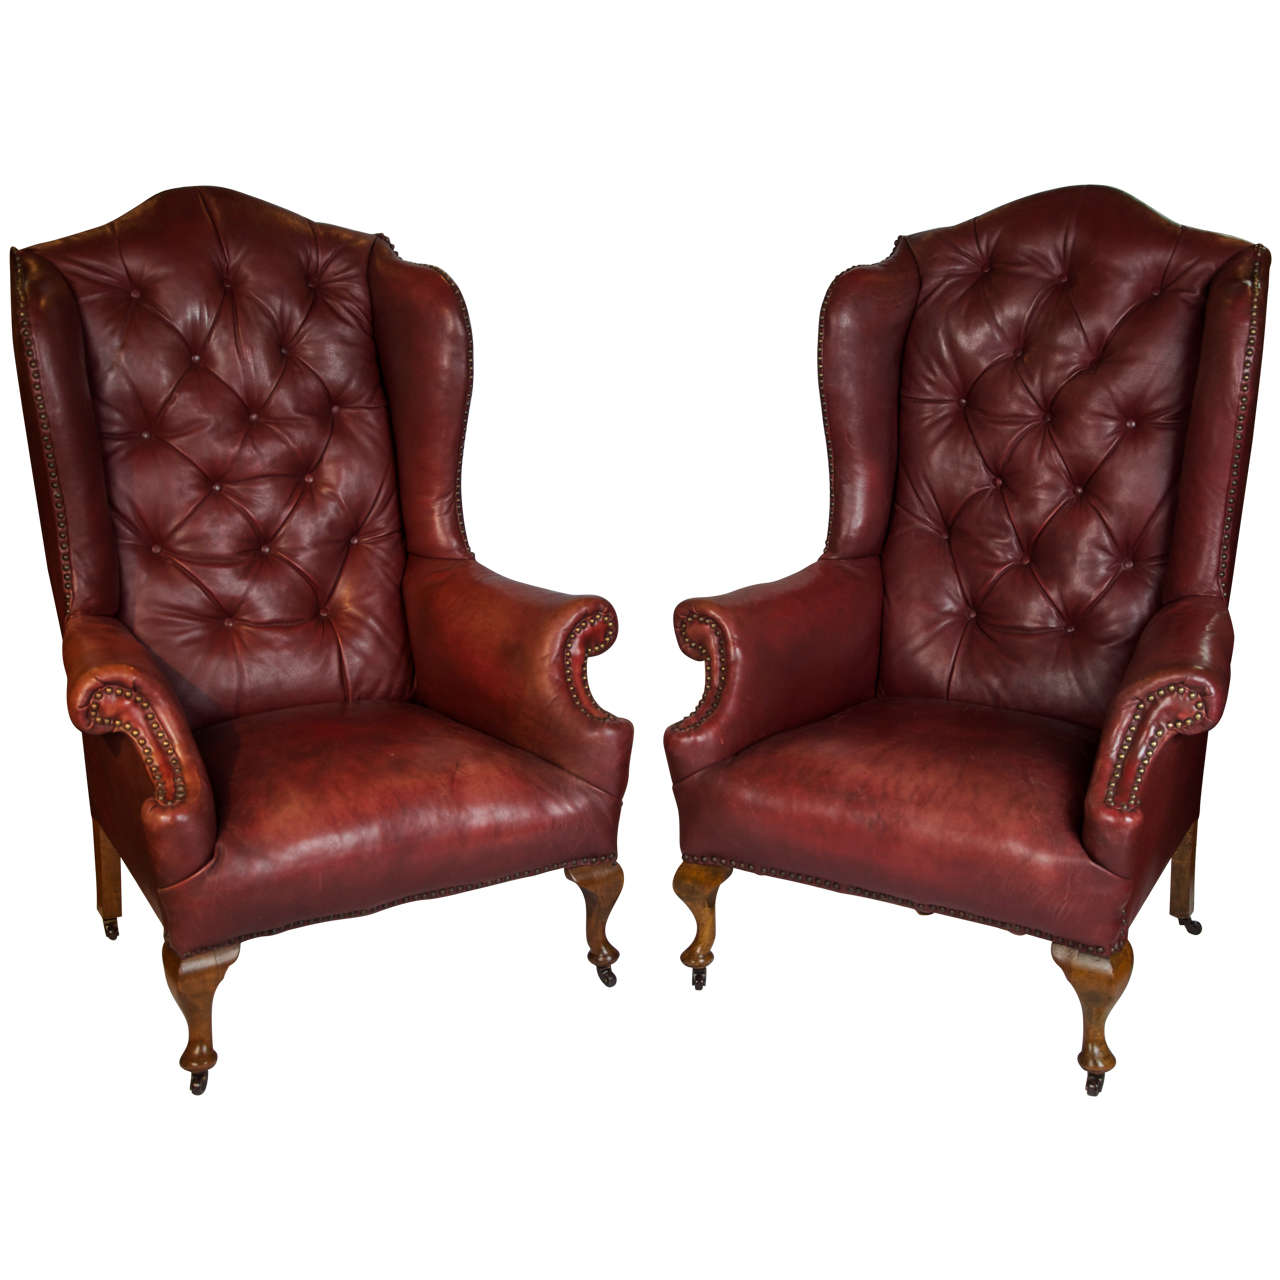 Red Leather Wingback Chair For Sale: Pair Of Early 20th Century Red Leather Wing Back Chairs At